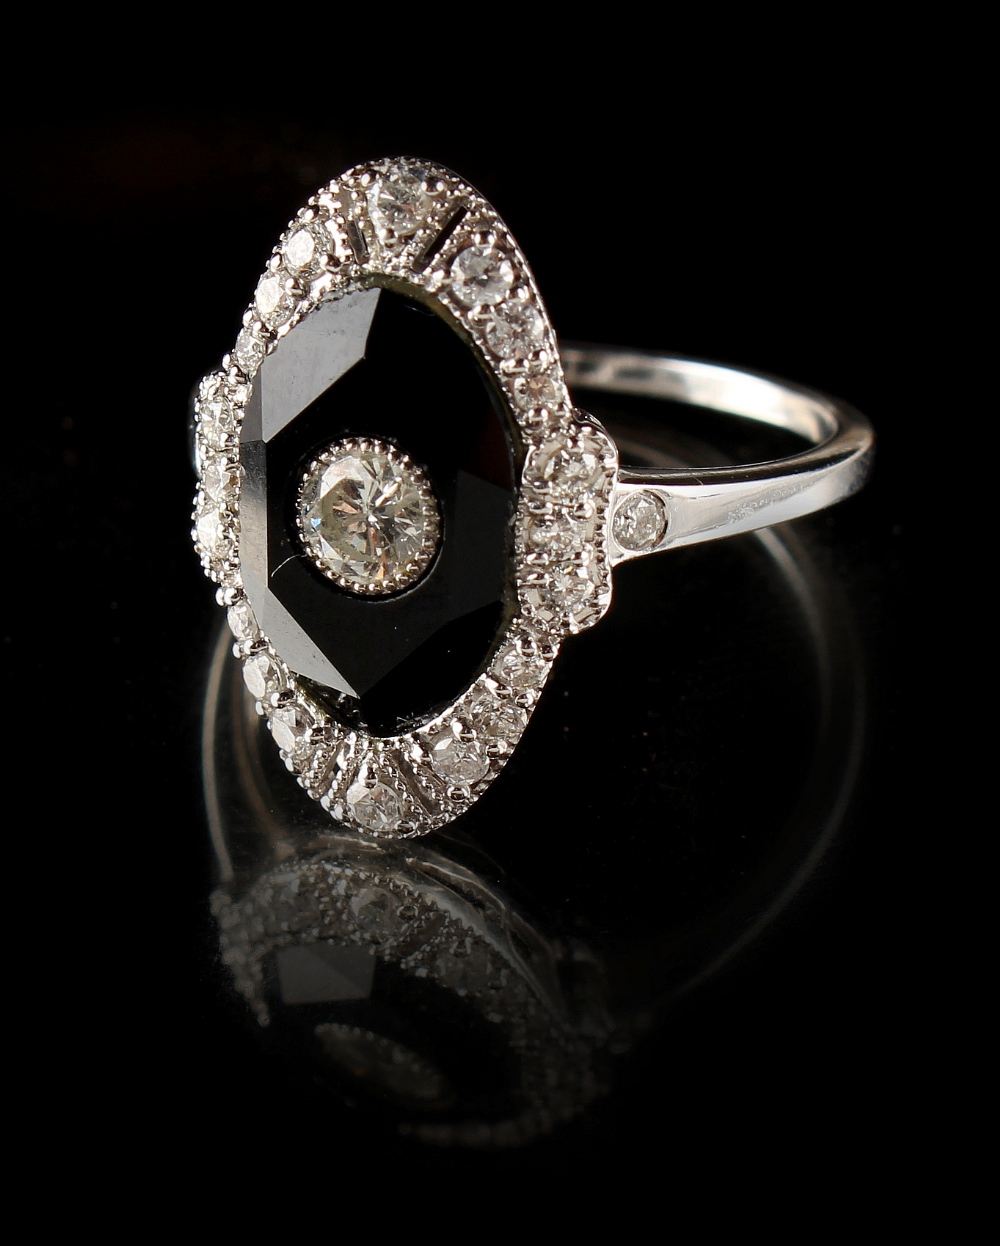 Lot 233 - An Art Deco 18ct white gold diamond & black onyx ring, with oval setting, the estimated total